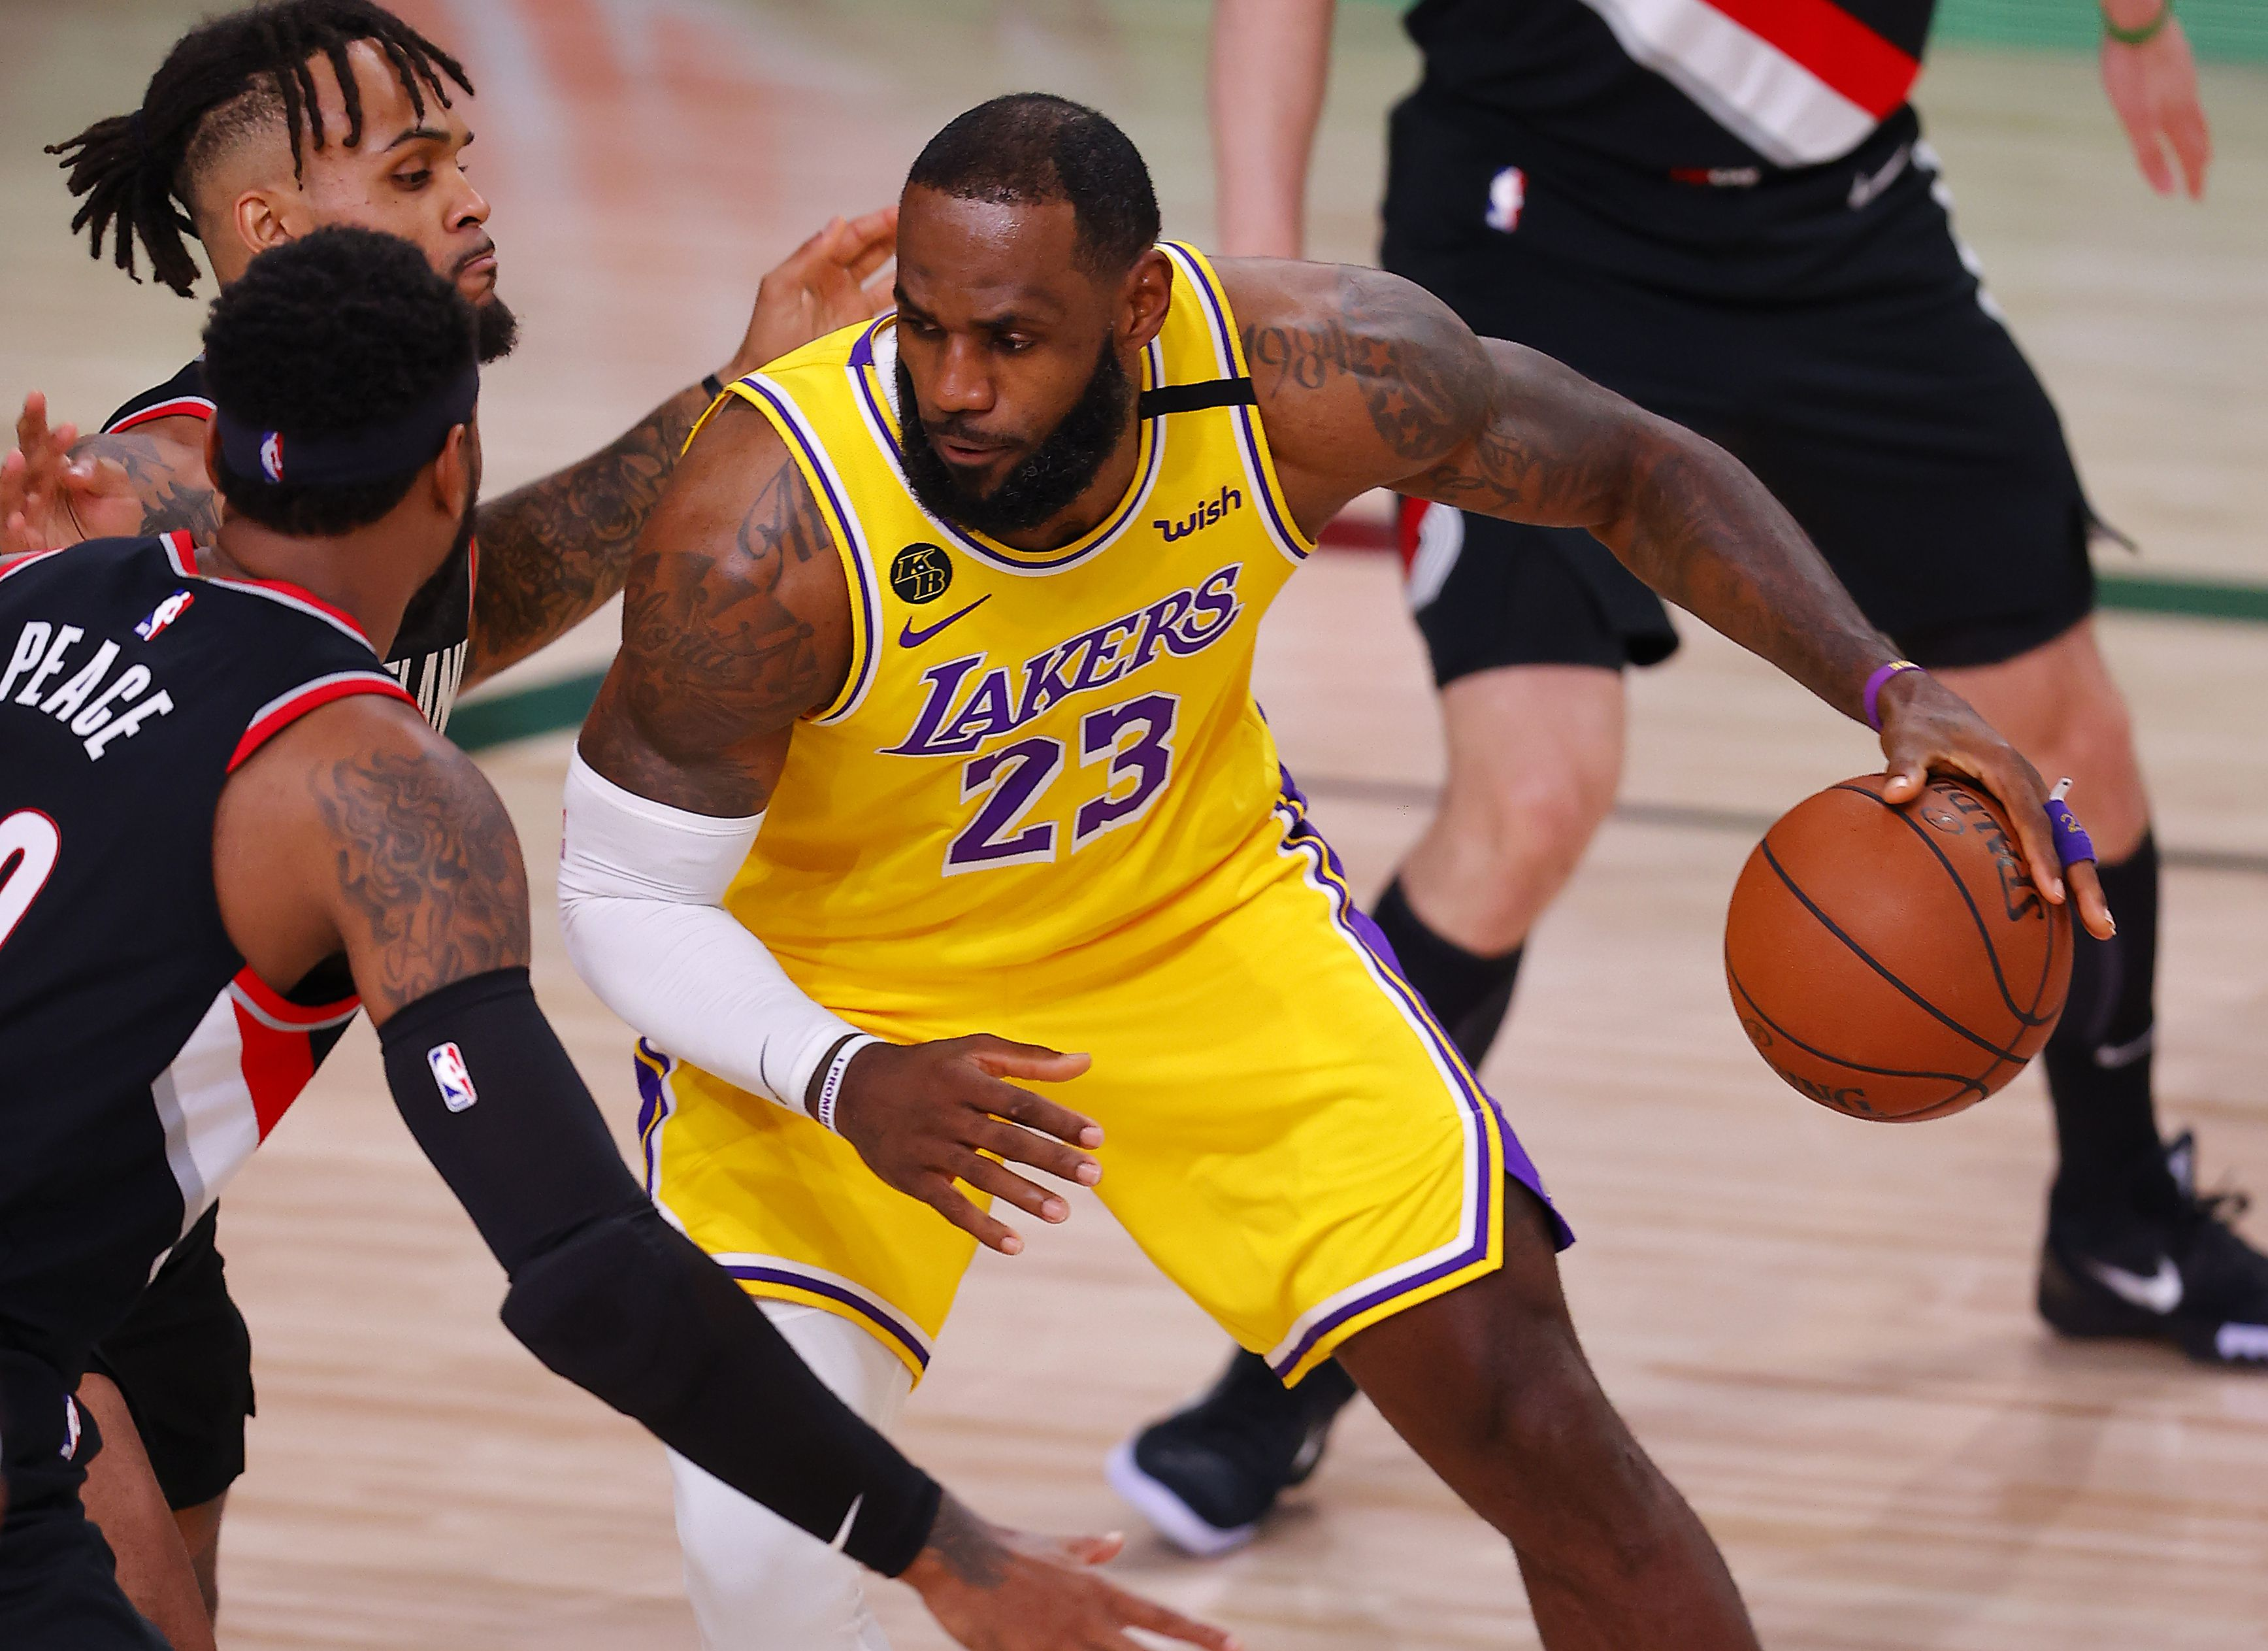 Los Angeles Lakers Vs Portland Trail Blazers Free Live Stream 8 20 20 How To Watch Nba Playoffs Game 2 Time Channel Odds Pennlive Com